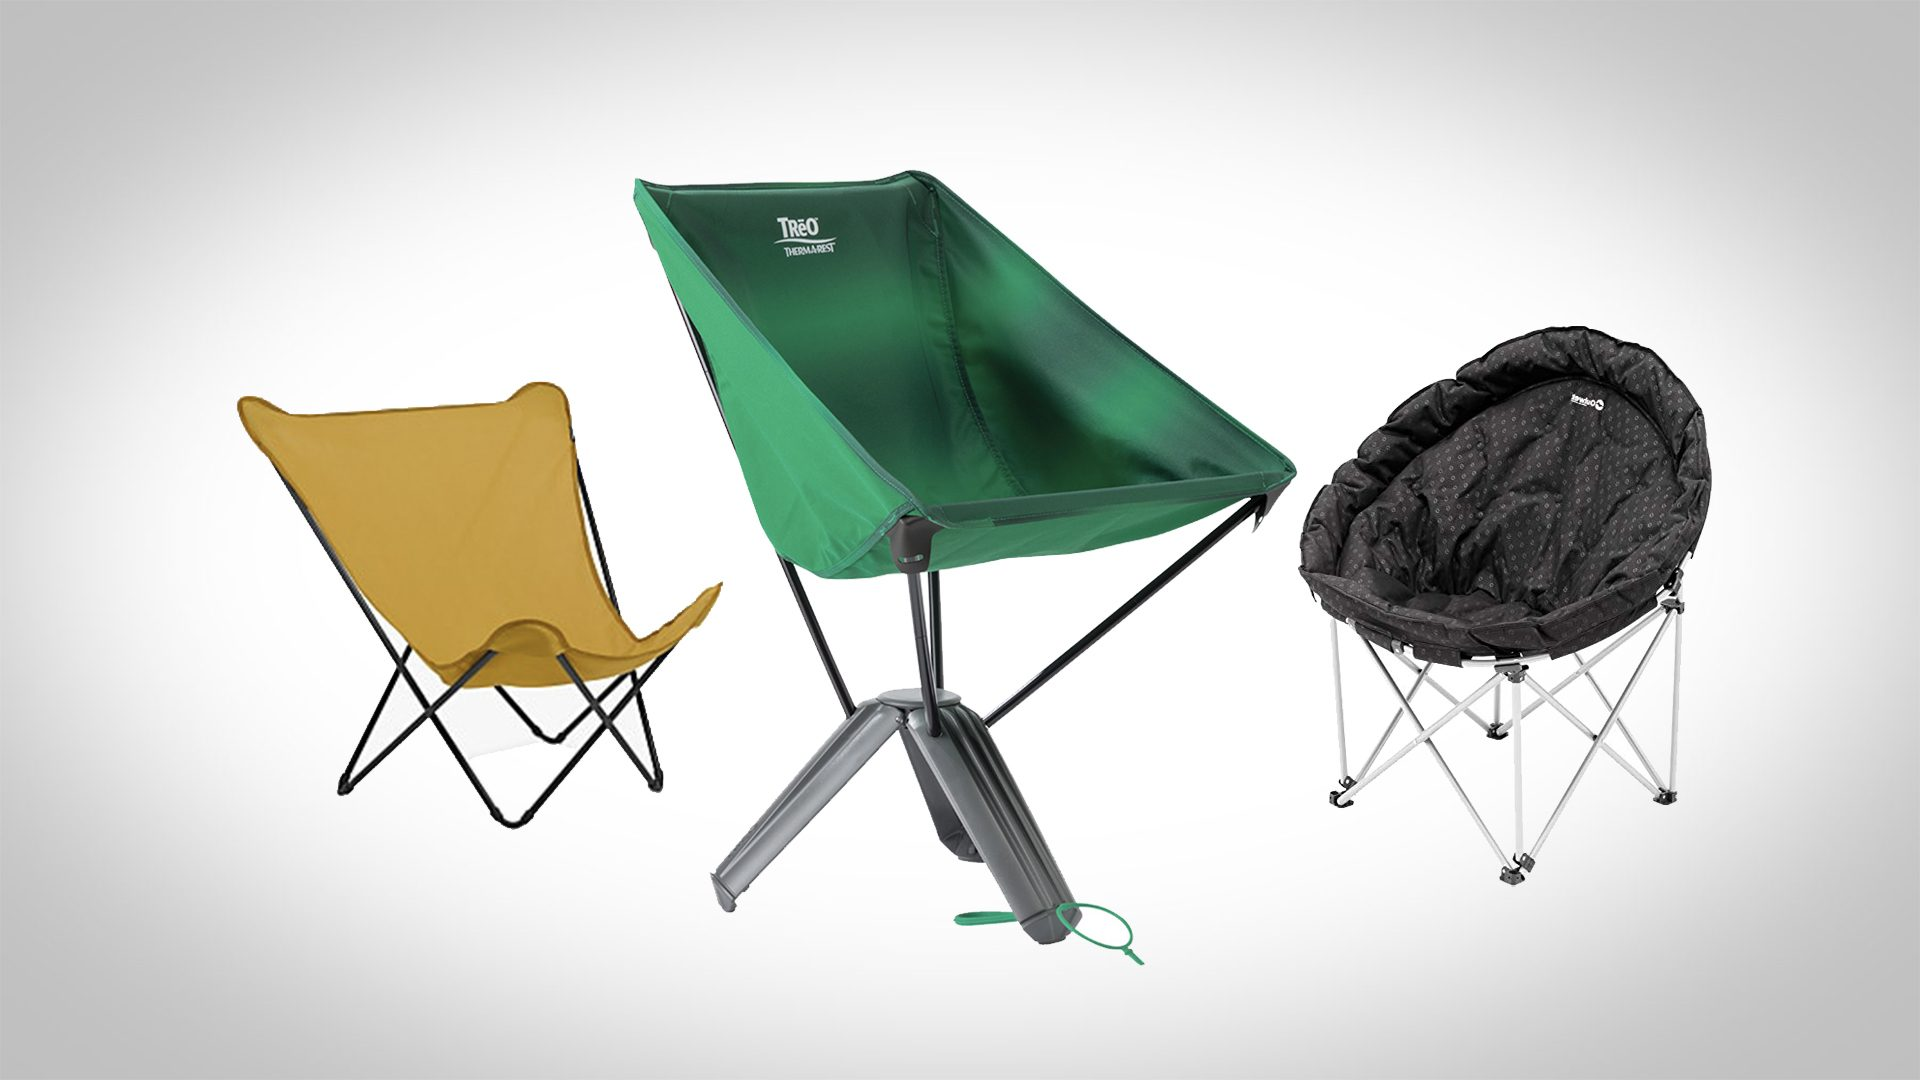 10 Best Camping Chairs For Chilling Off The Grid